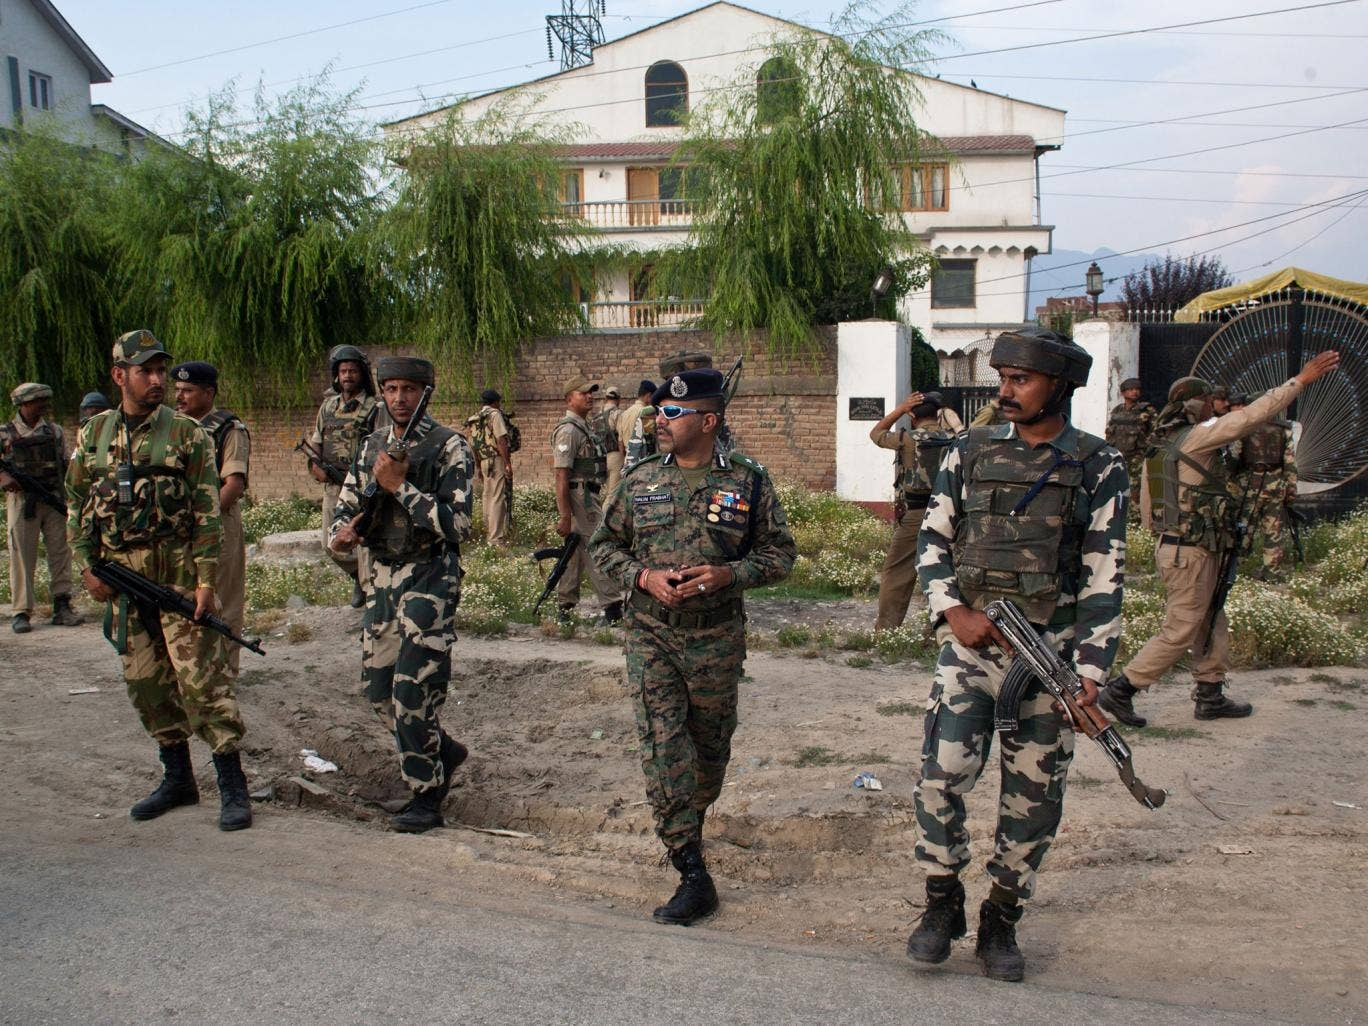 Indian policemen and paramilitary forces search for militants in residential houses after a militant attack on Indian army